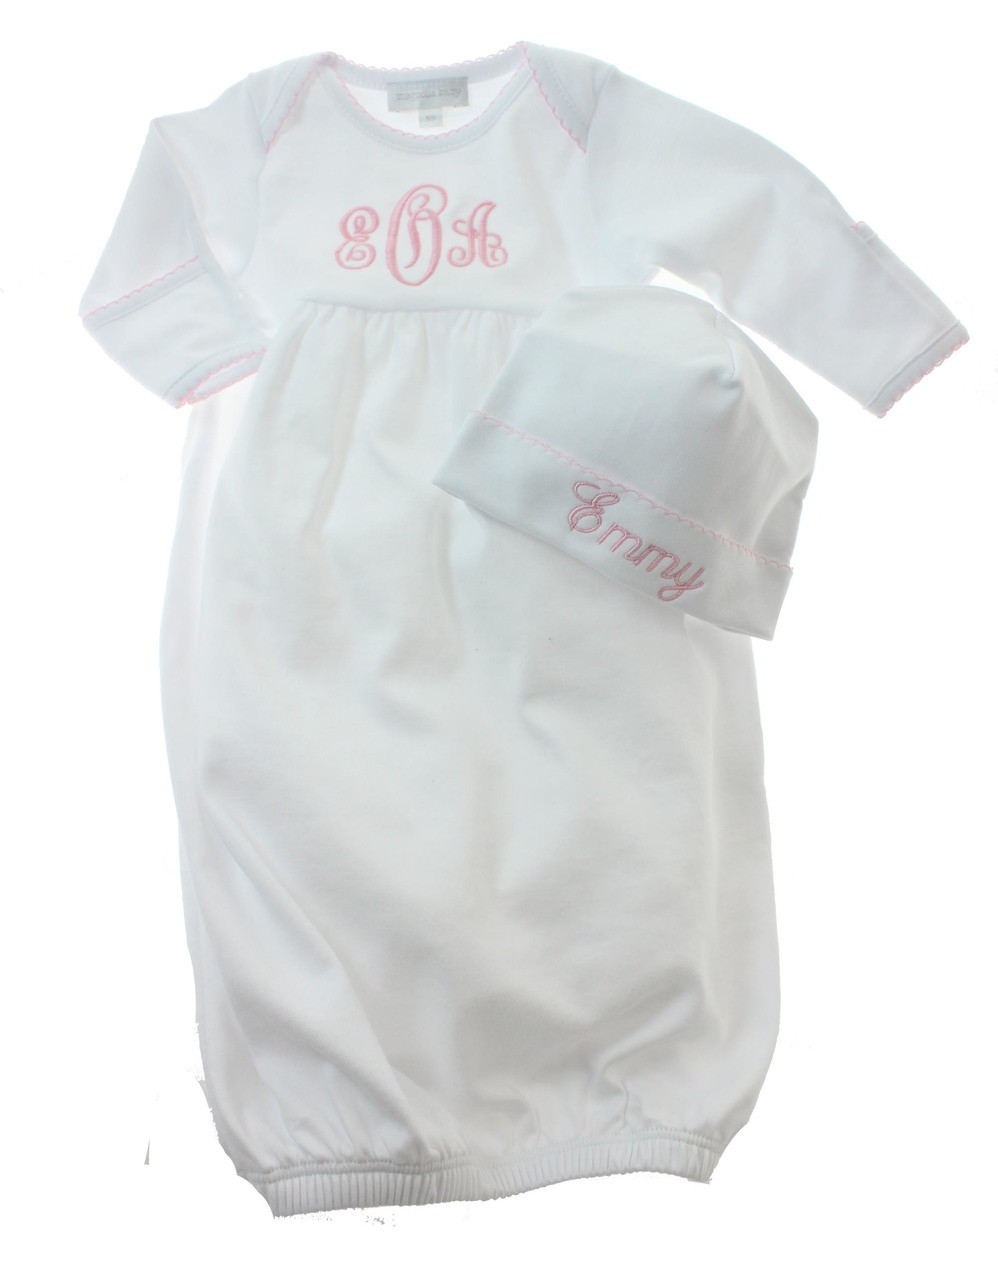 7e3f1fb18 Girls Personalized Take Home Gown White & Pink | Magnolia Baby